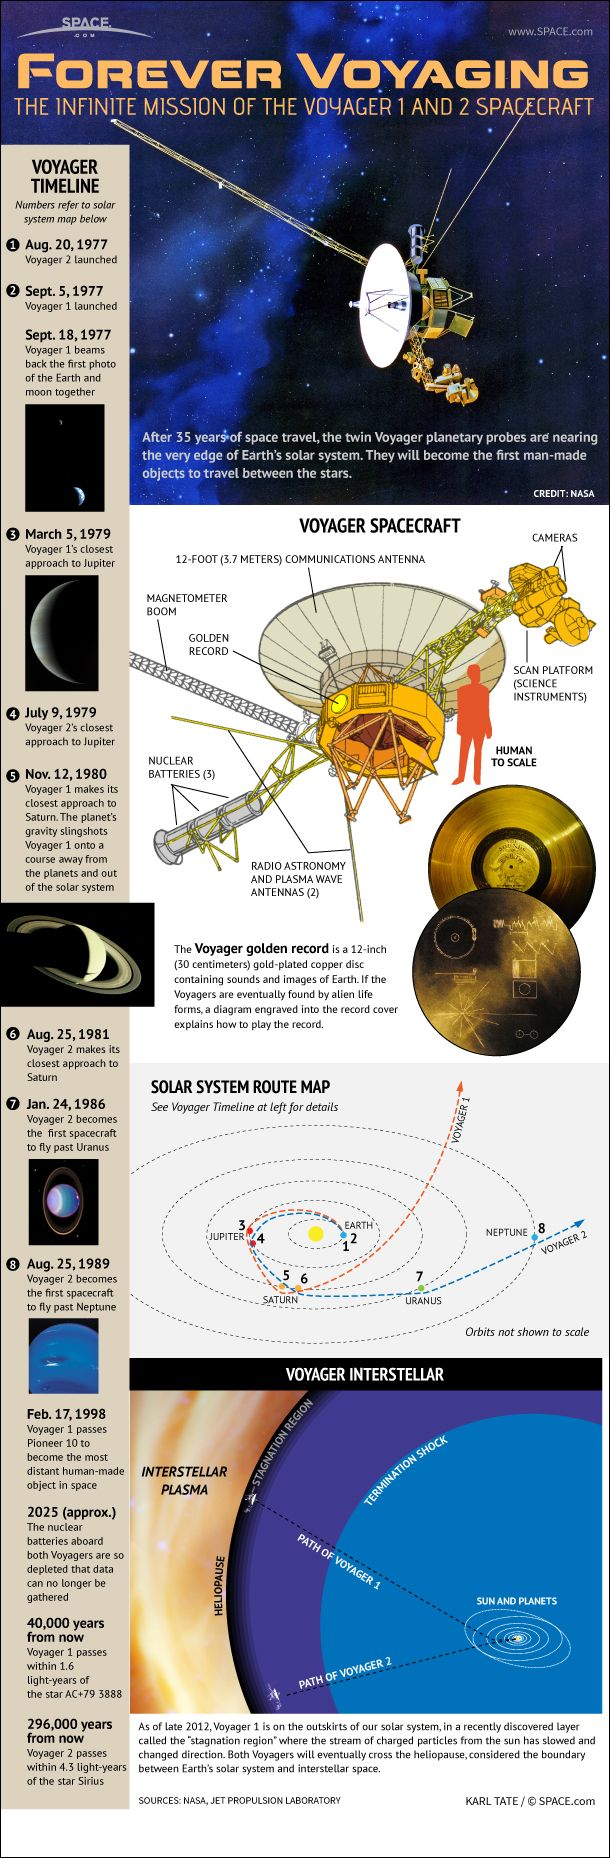 spacecraft left solar system - photo #11